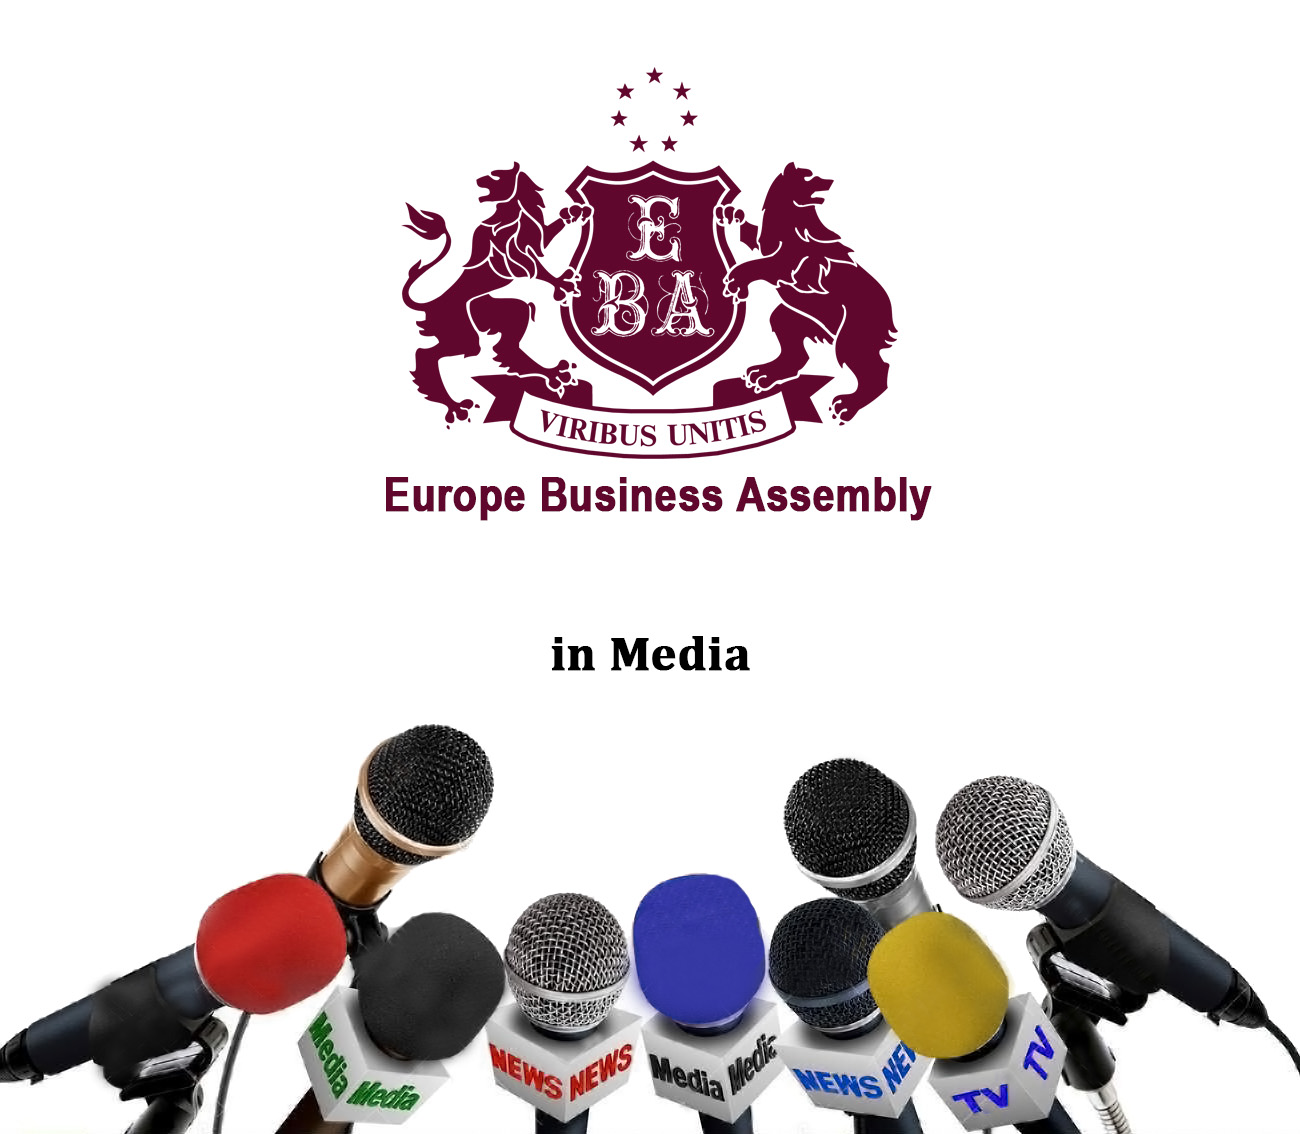 Europe Business Assembly Featured in World Media